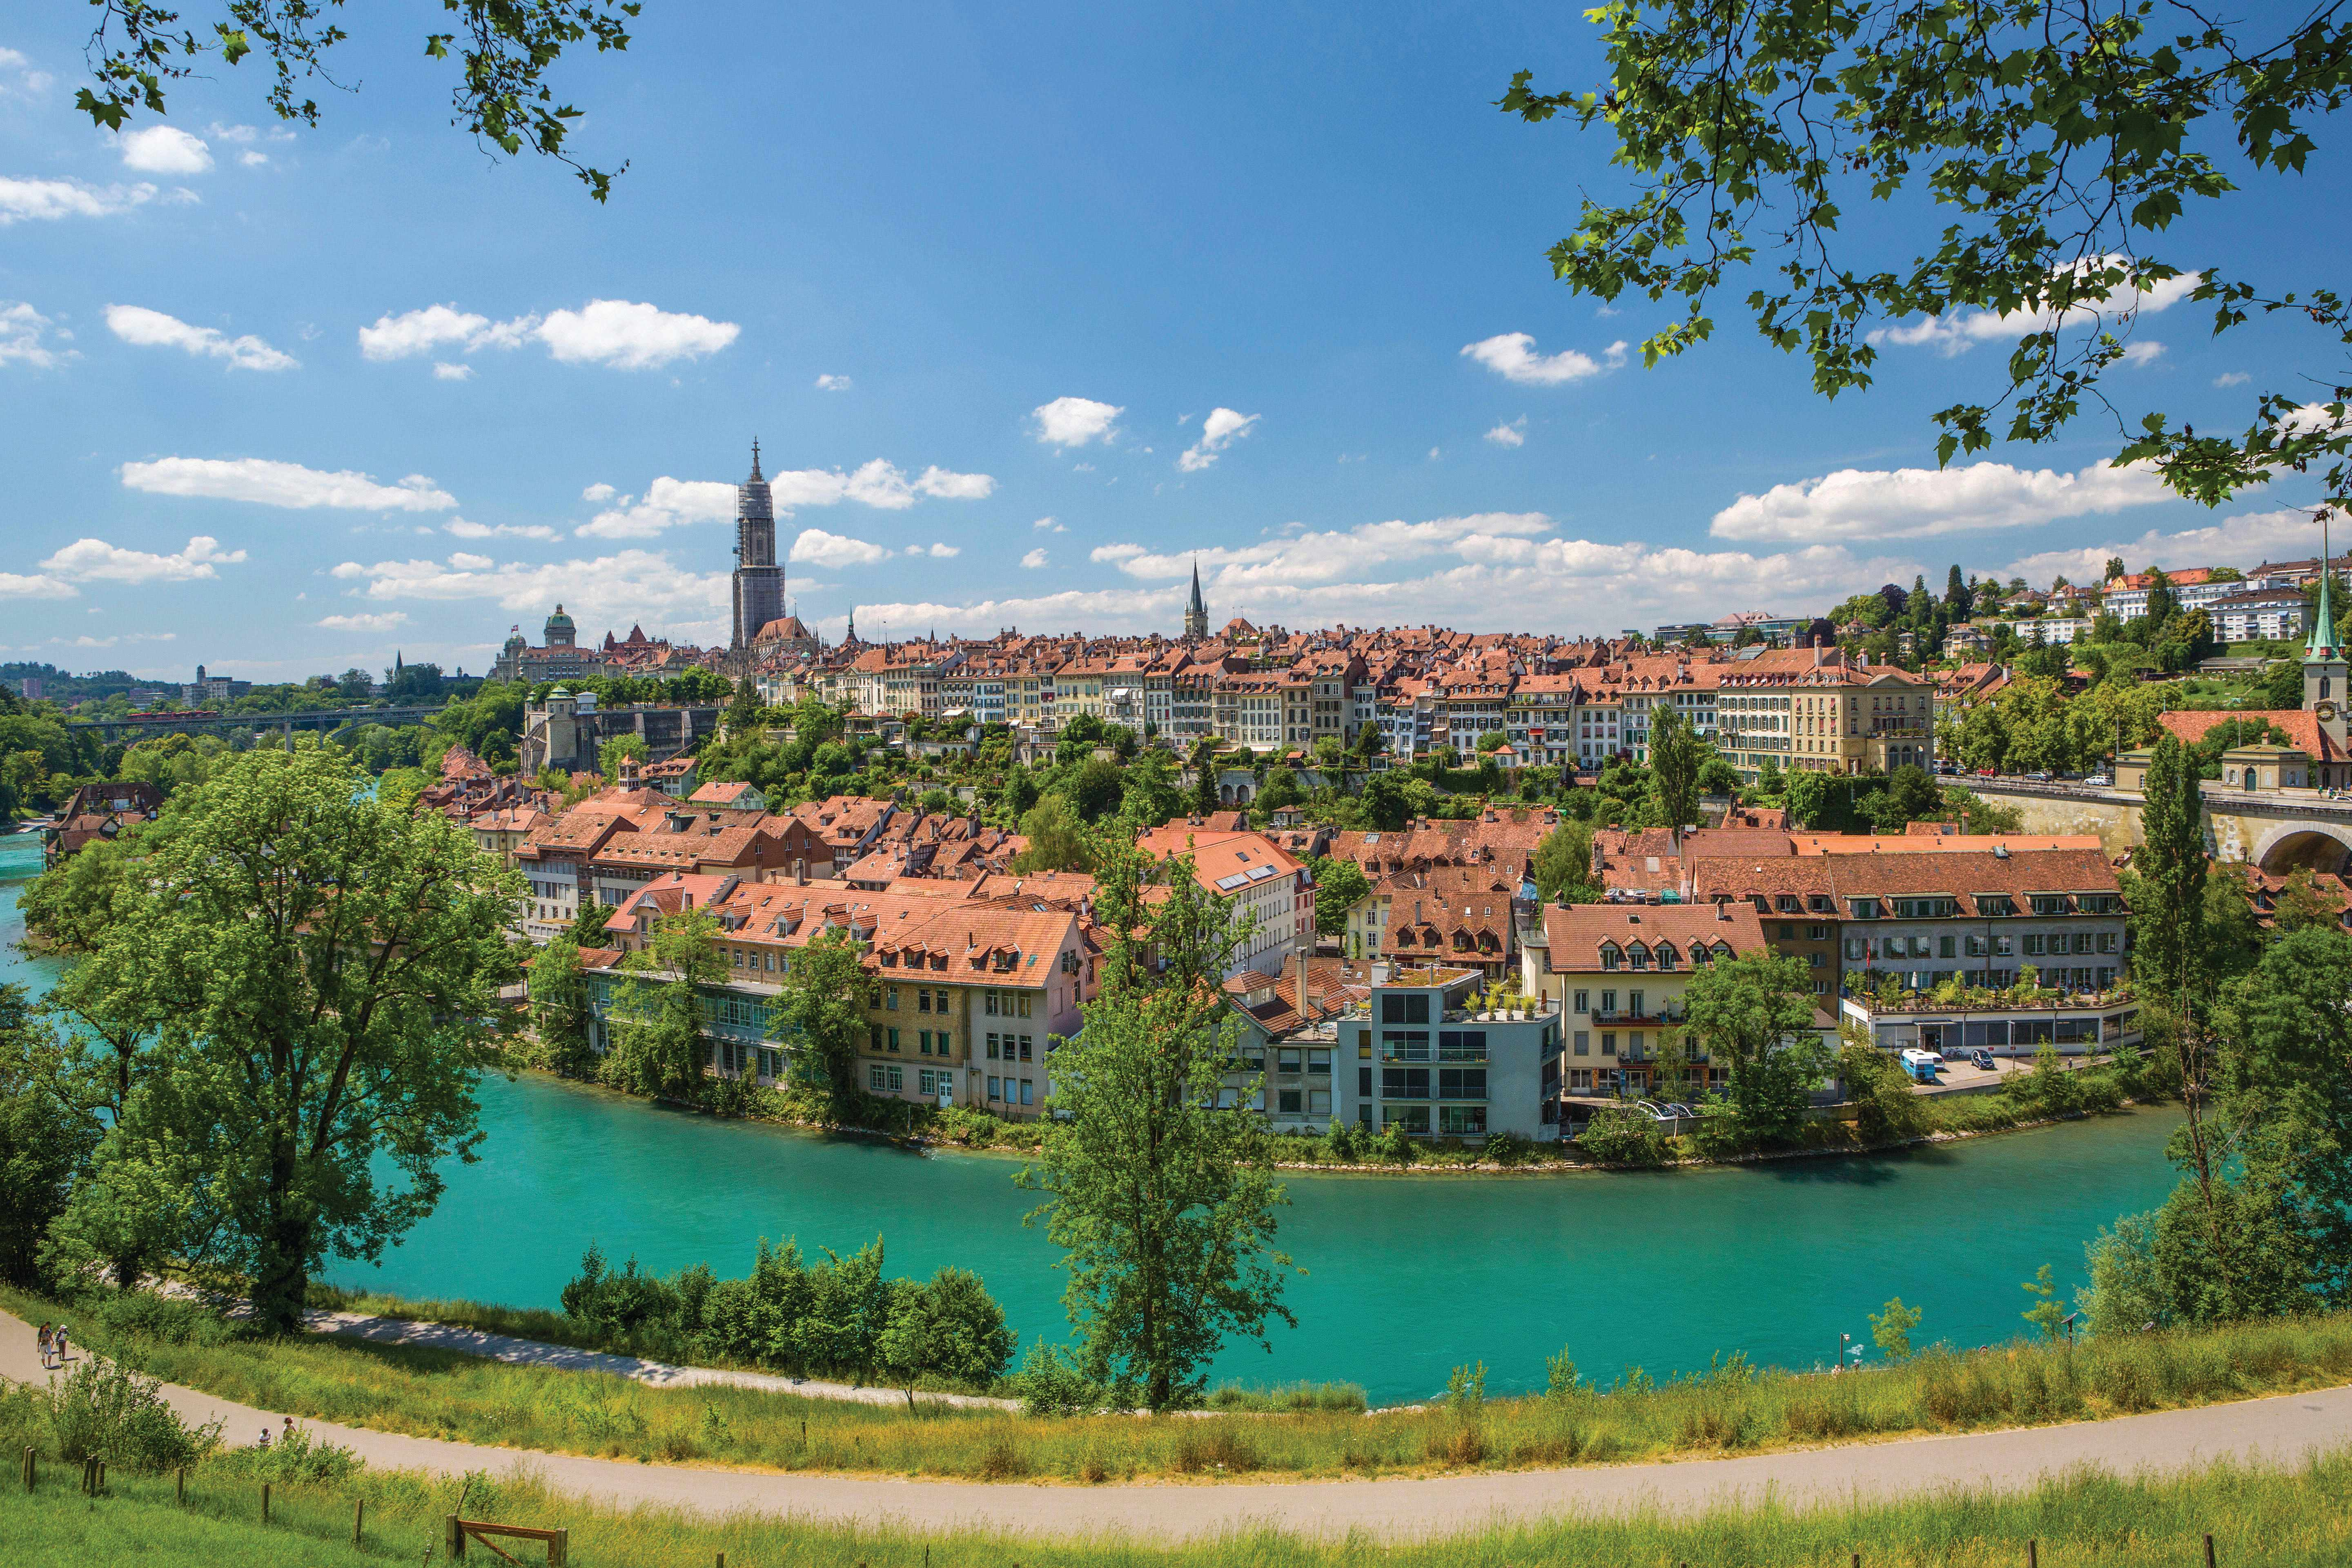 """The city of Bern, Switzerland. """"I lived in Bern as a young lecturer, and I still feel positive about its effect on my life and writing,"""" says Seán Williams. (Photo by Chinnaphong Mungsiri via Getty Images)"""